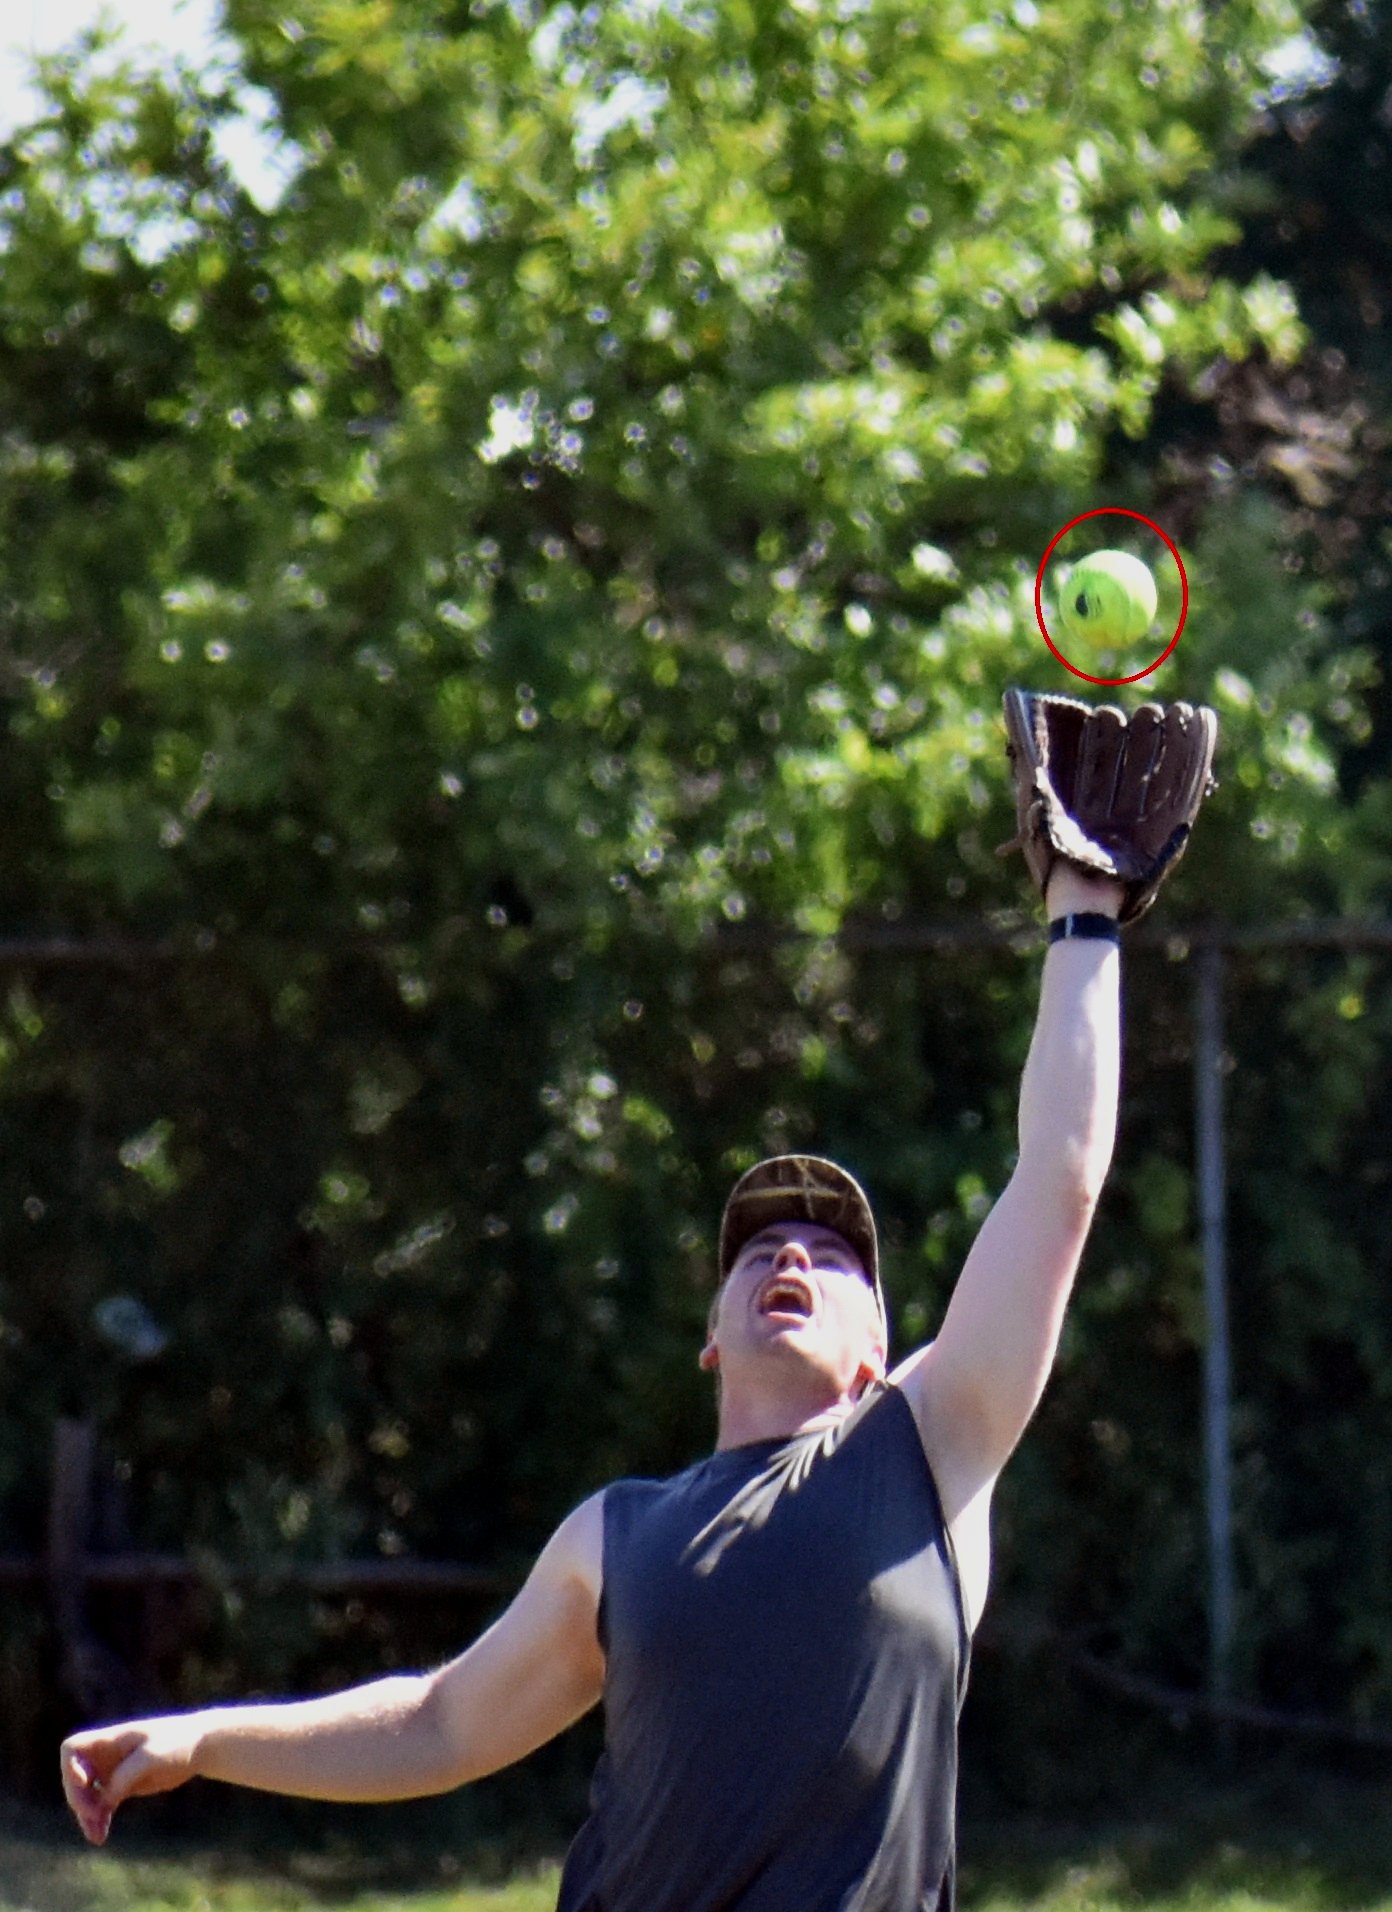 male player reaching to catch fly ball